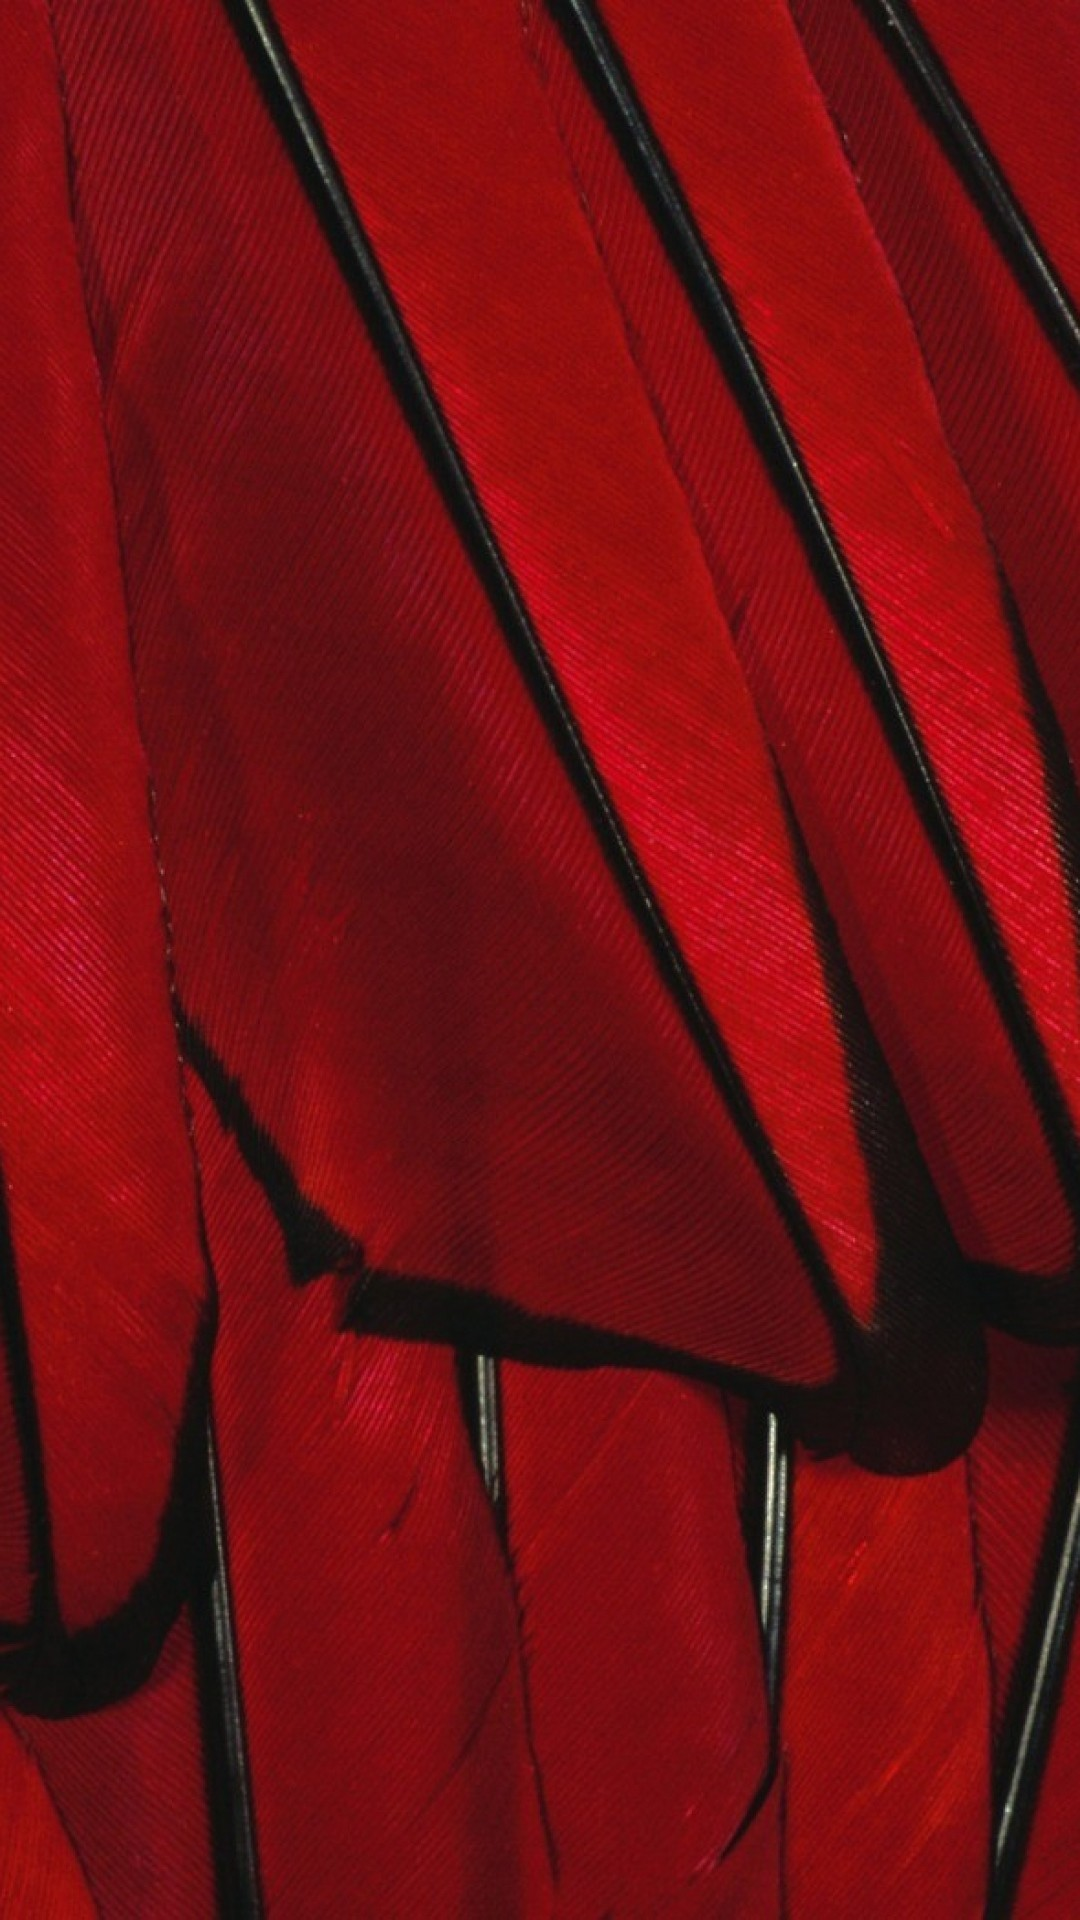 red.quenalbertini: Black Red Paint Color Feather iPhone 6 Plus Wall- paper